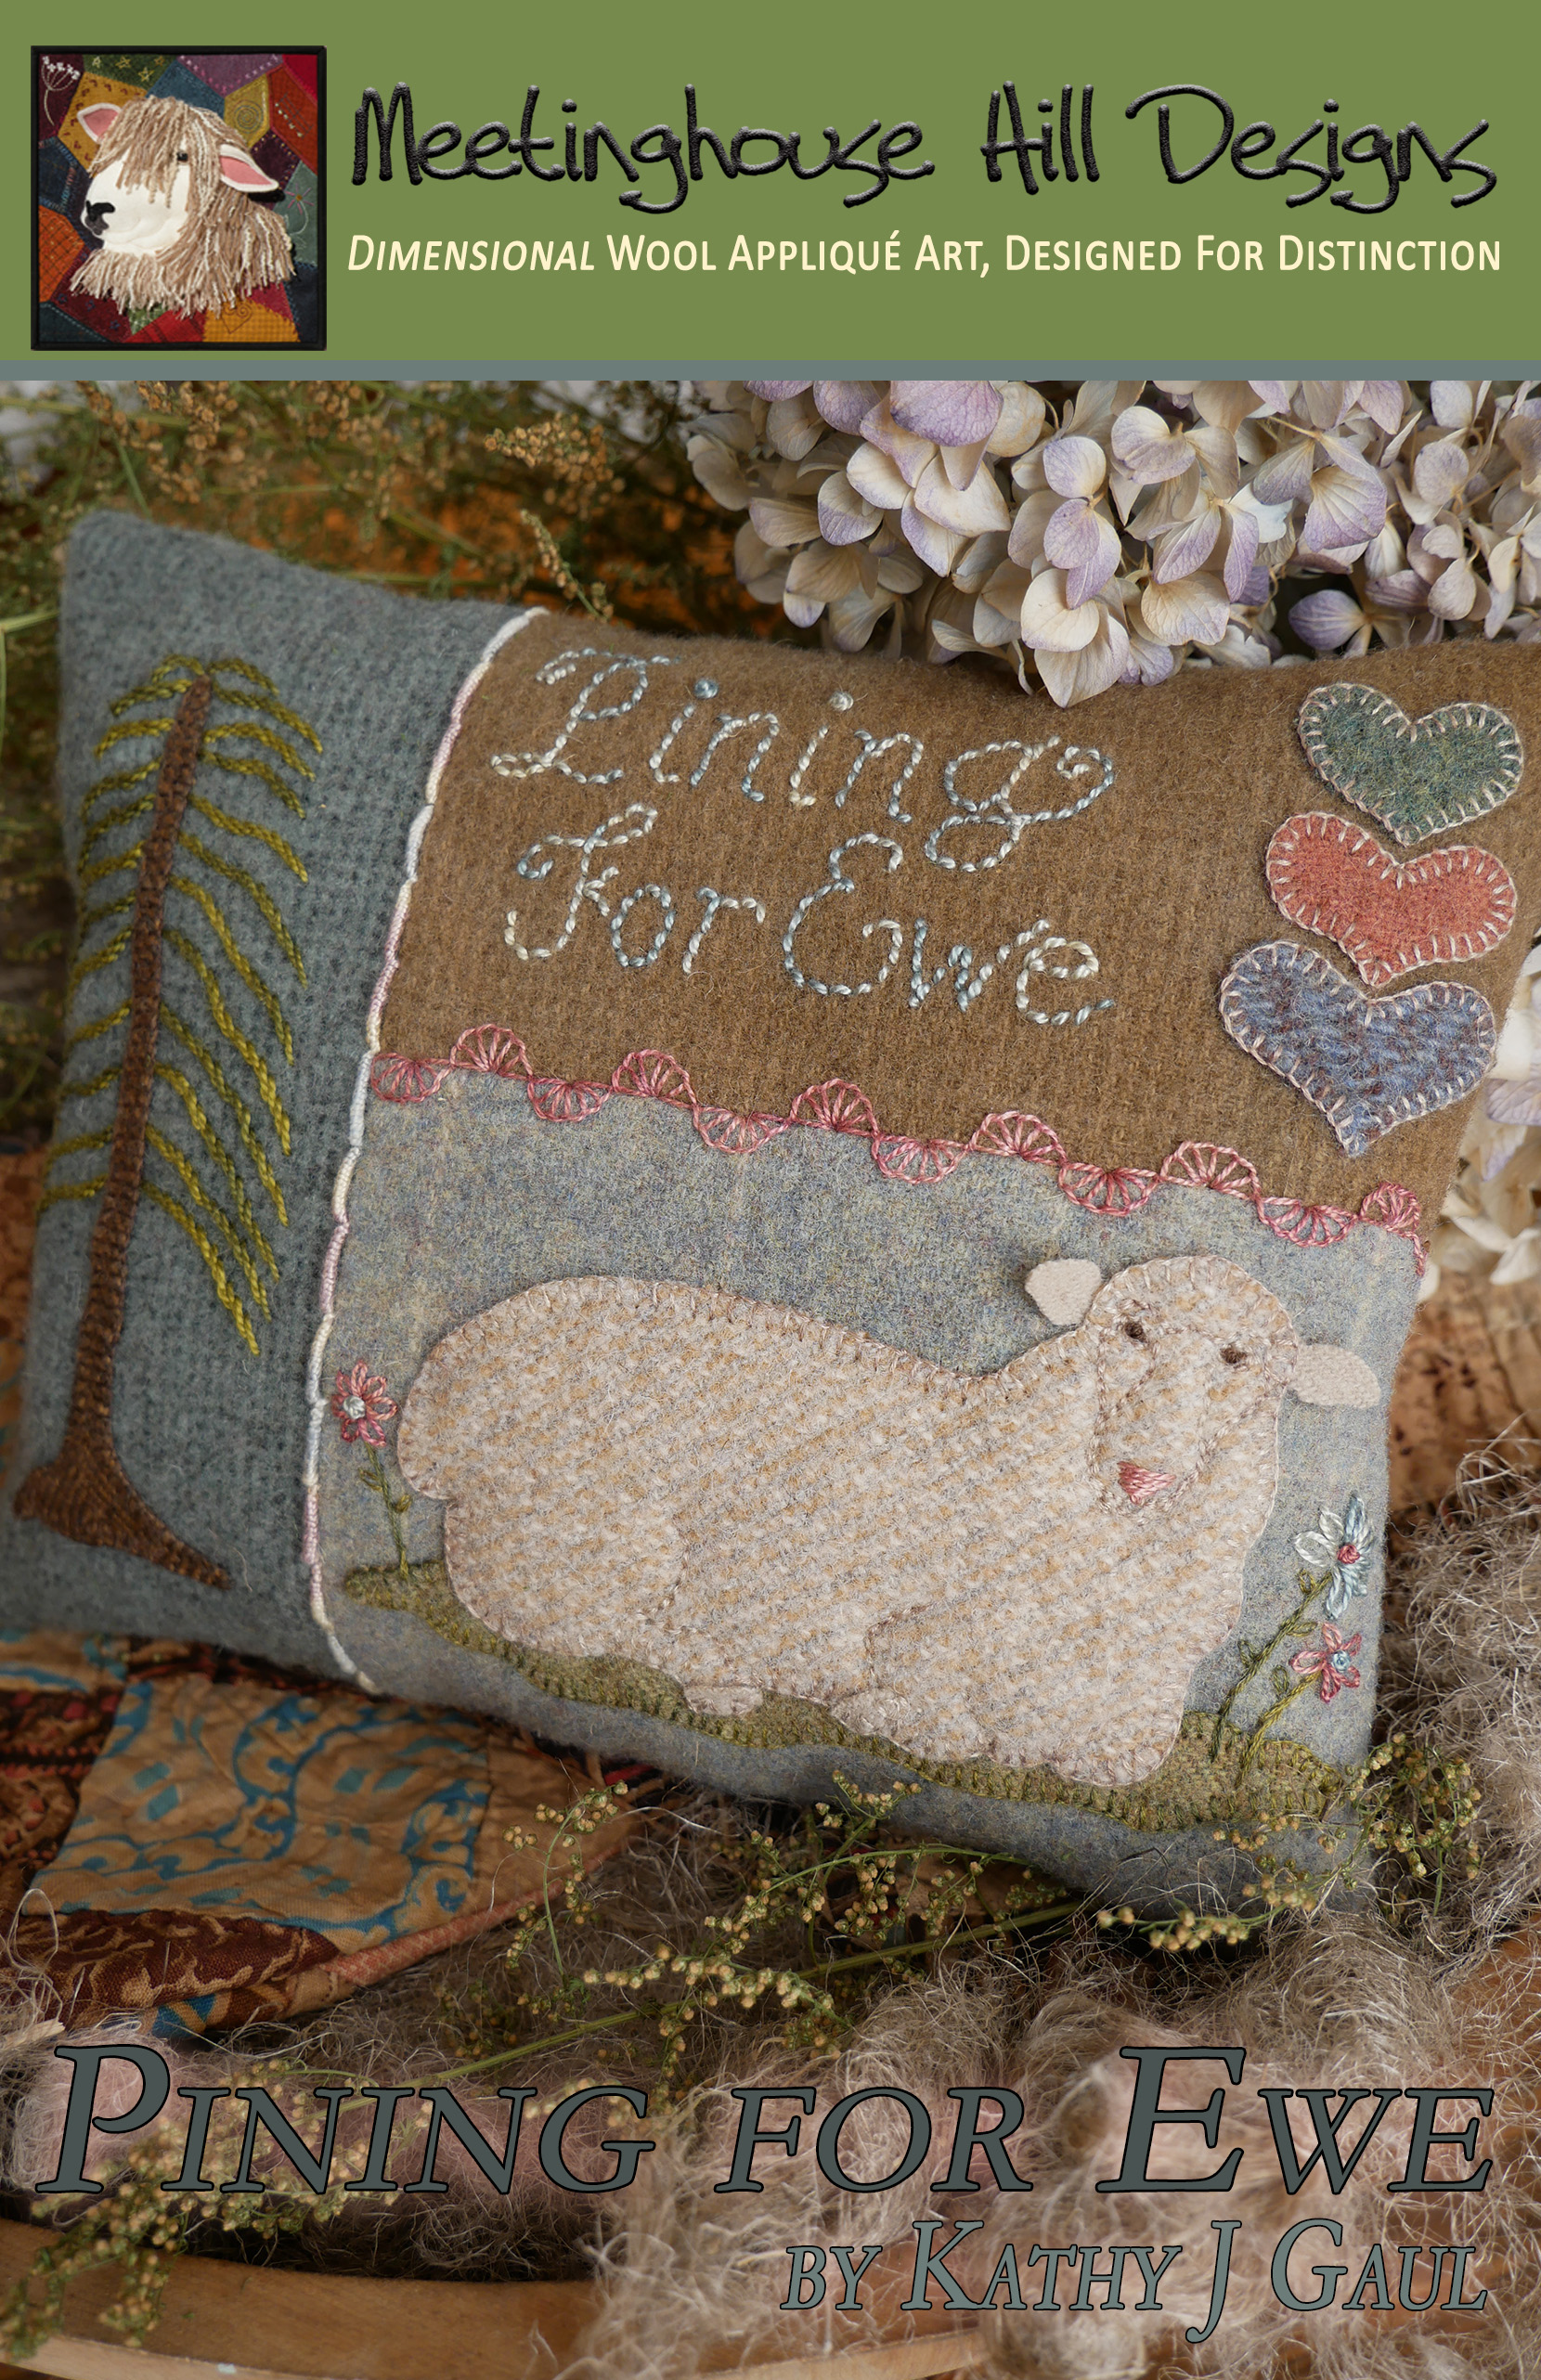 meetinghouse-hill-pining-for-ewe-cover.jpg